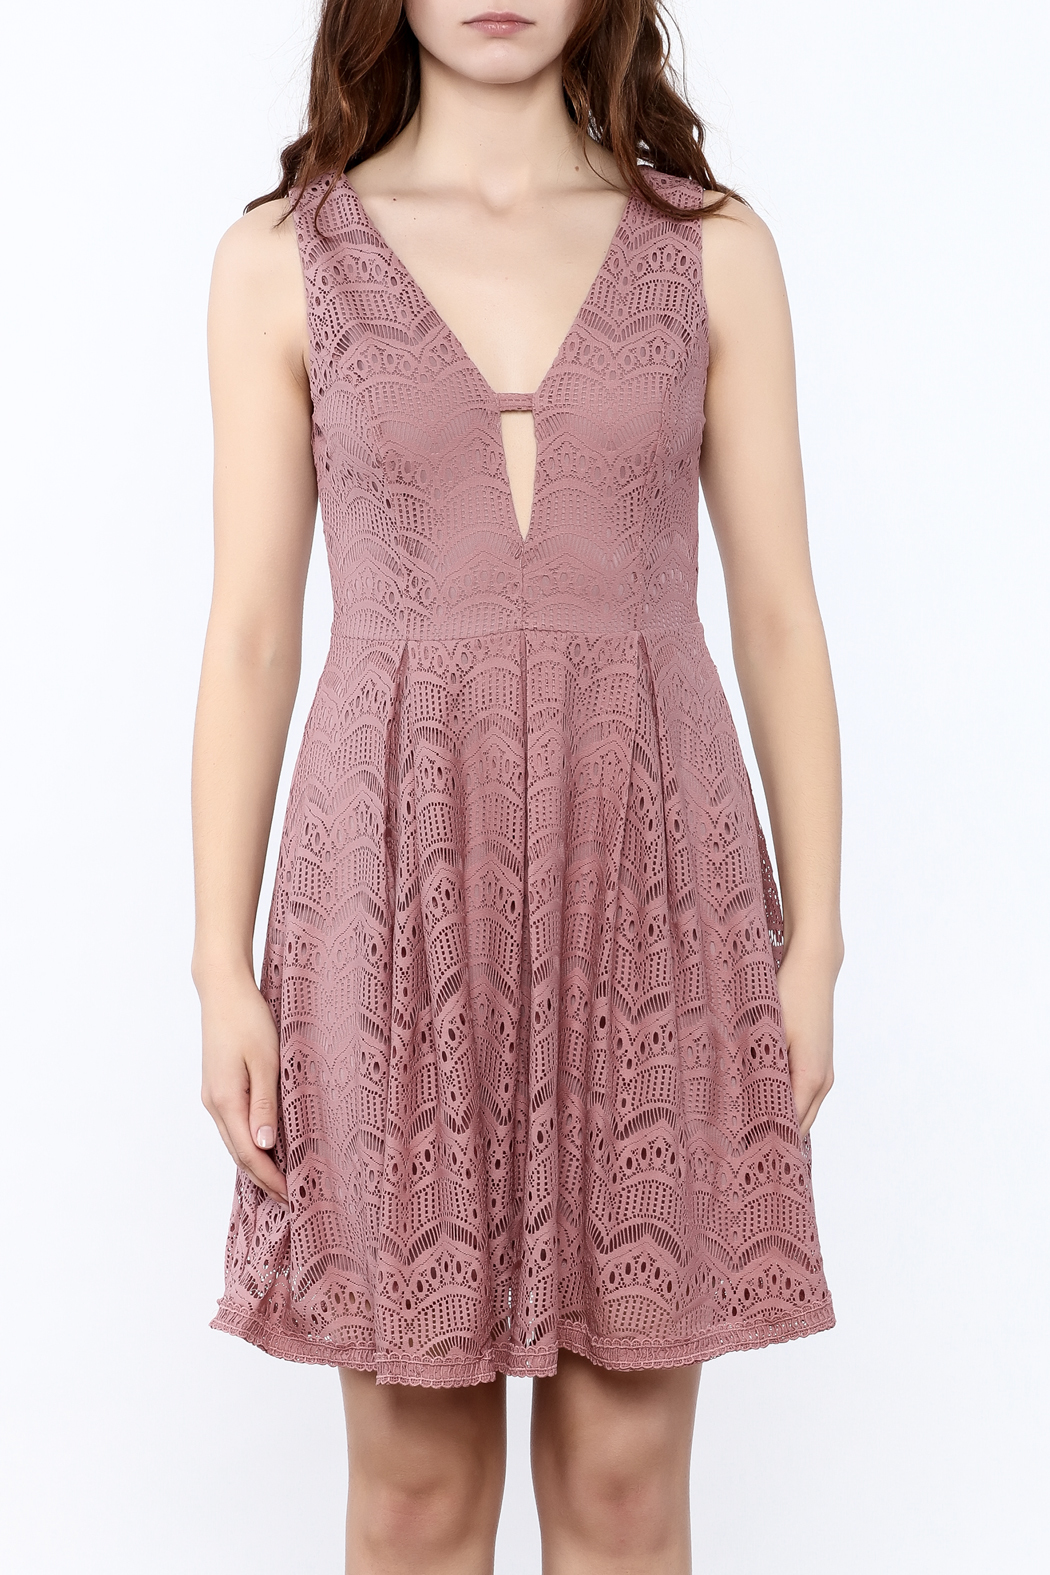 She + Sky Old Rose Lace Dress - Side Cropped Image